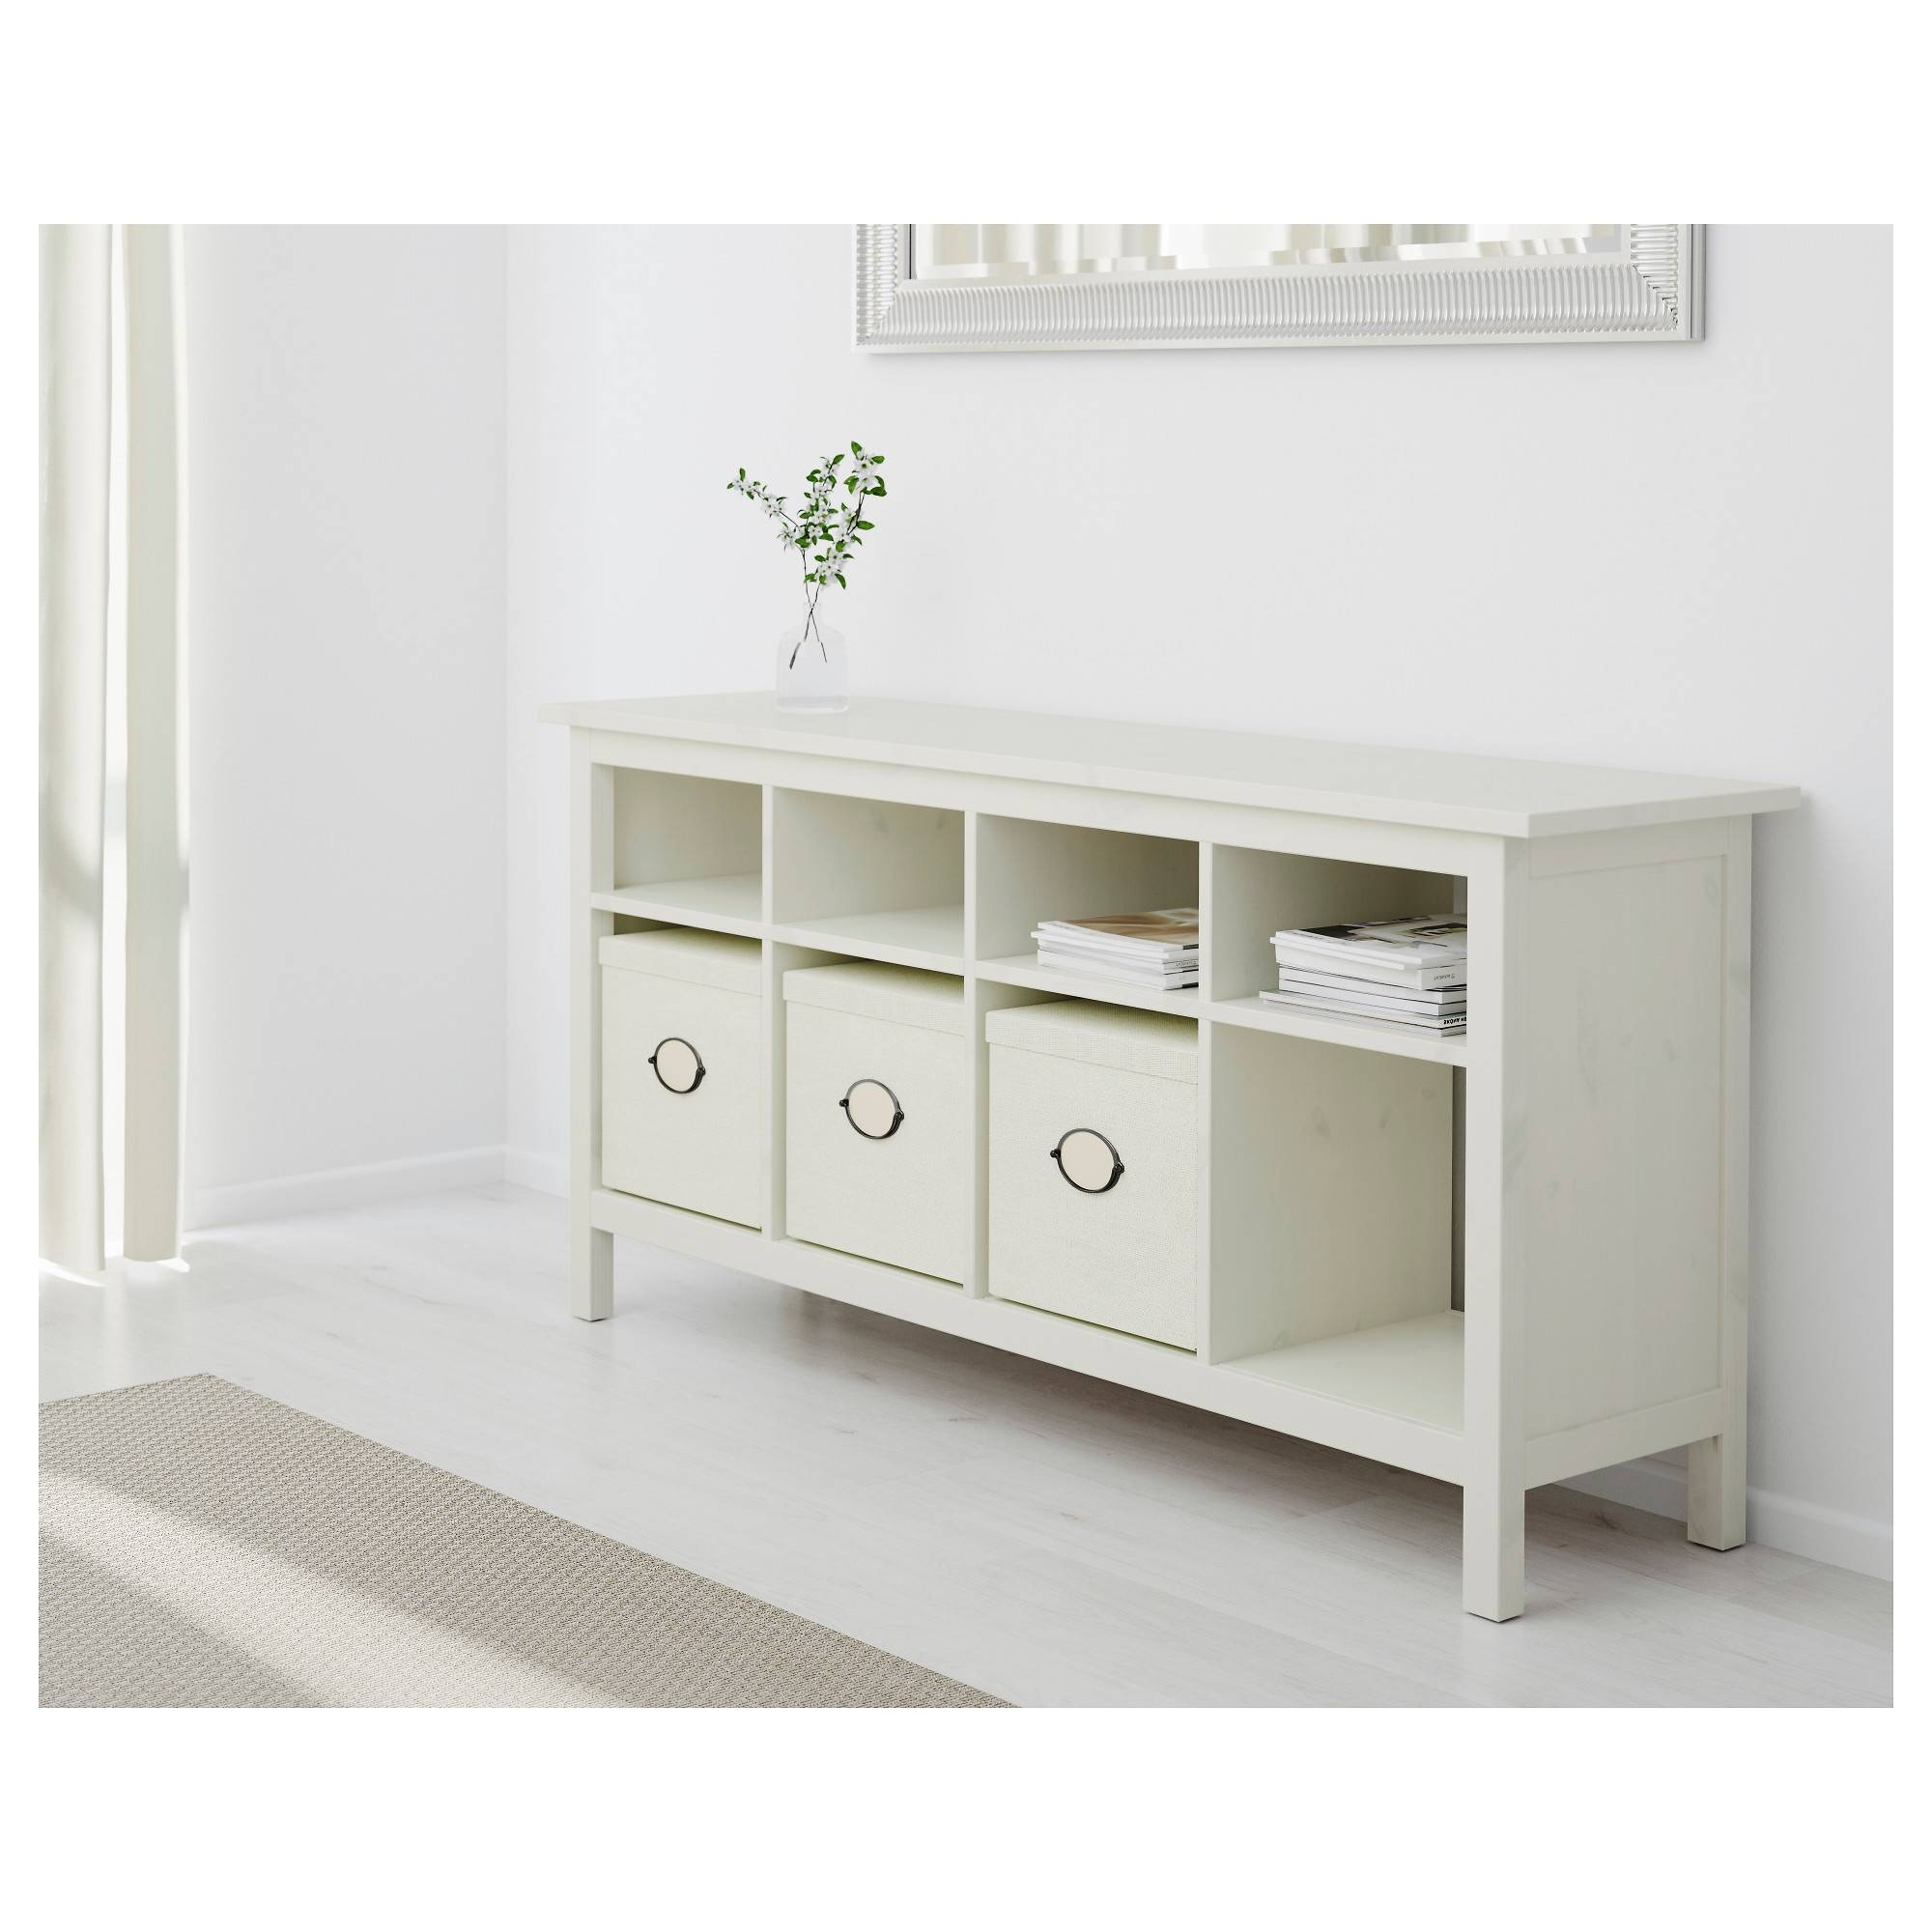 Sideboards. Amazing Ikea Dining Hutch: Ikea-Dining-Hutch-Ikea for White Sideboard Cabinets (Image 20 of 30)